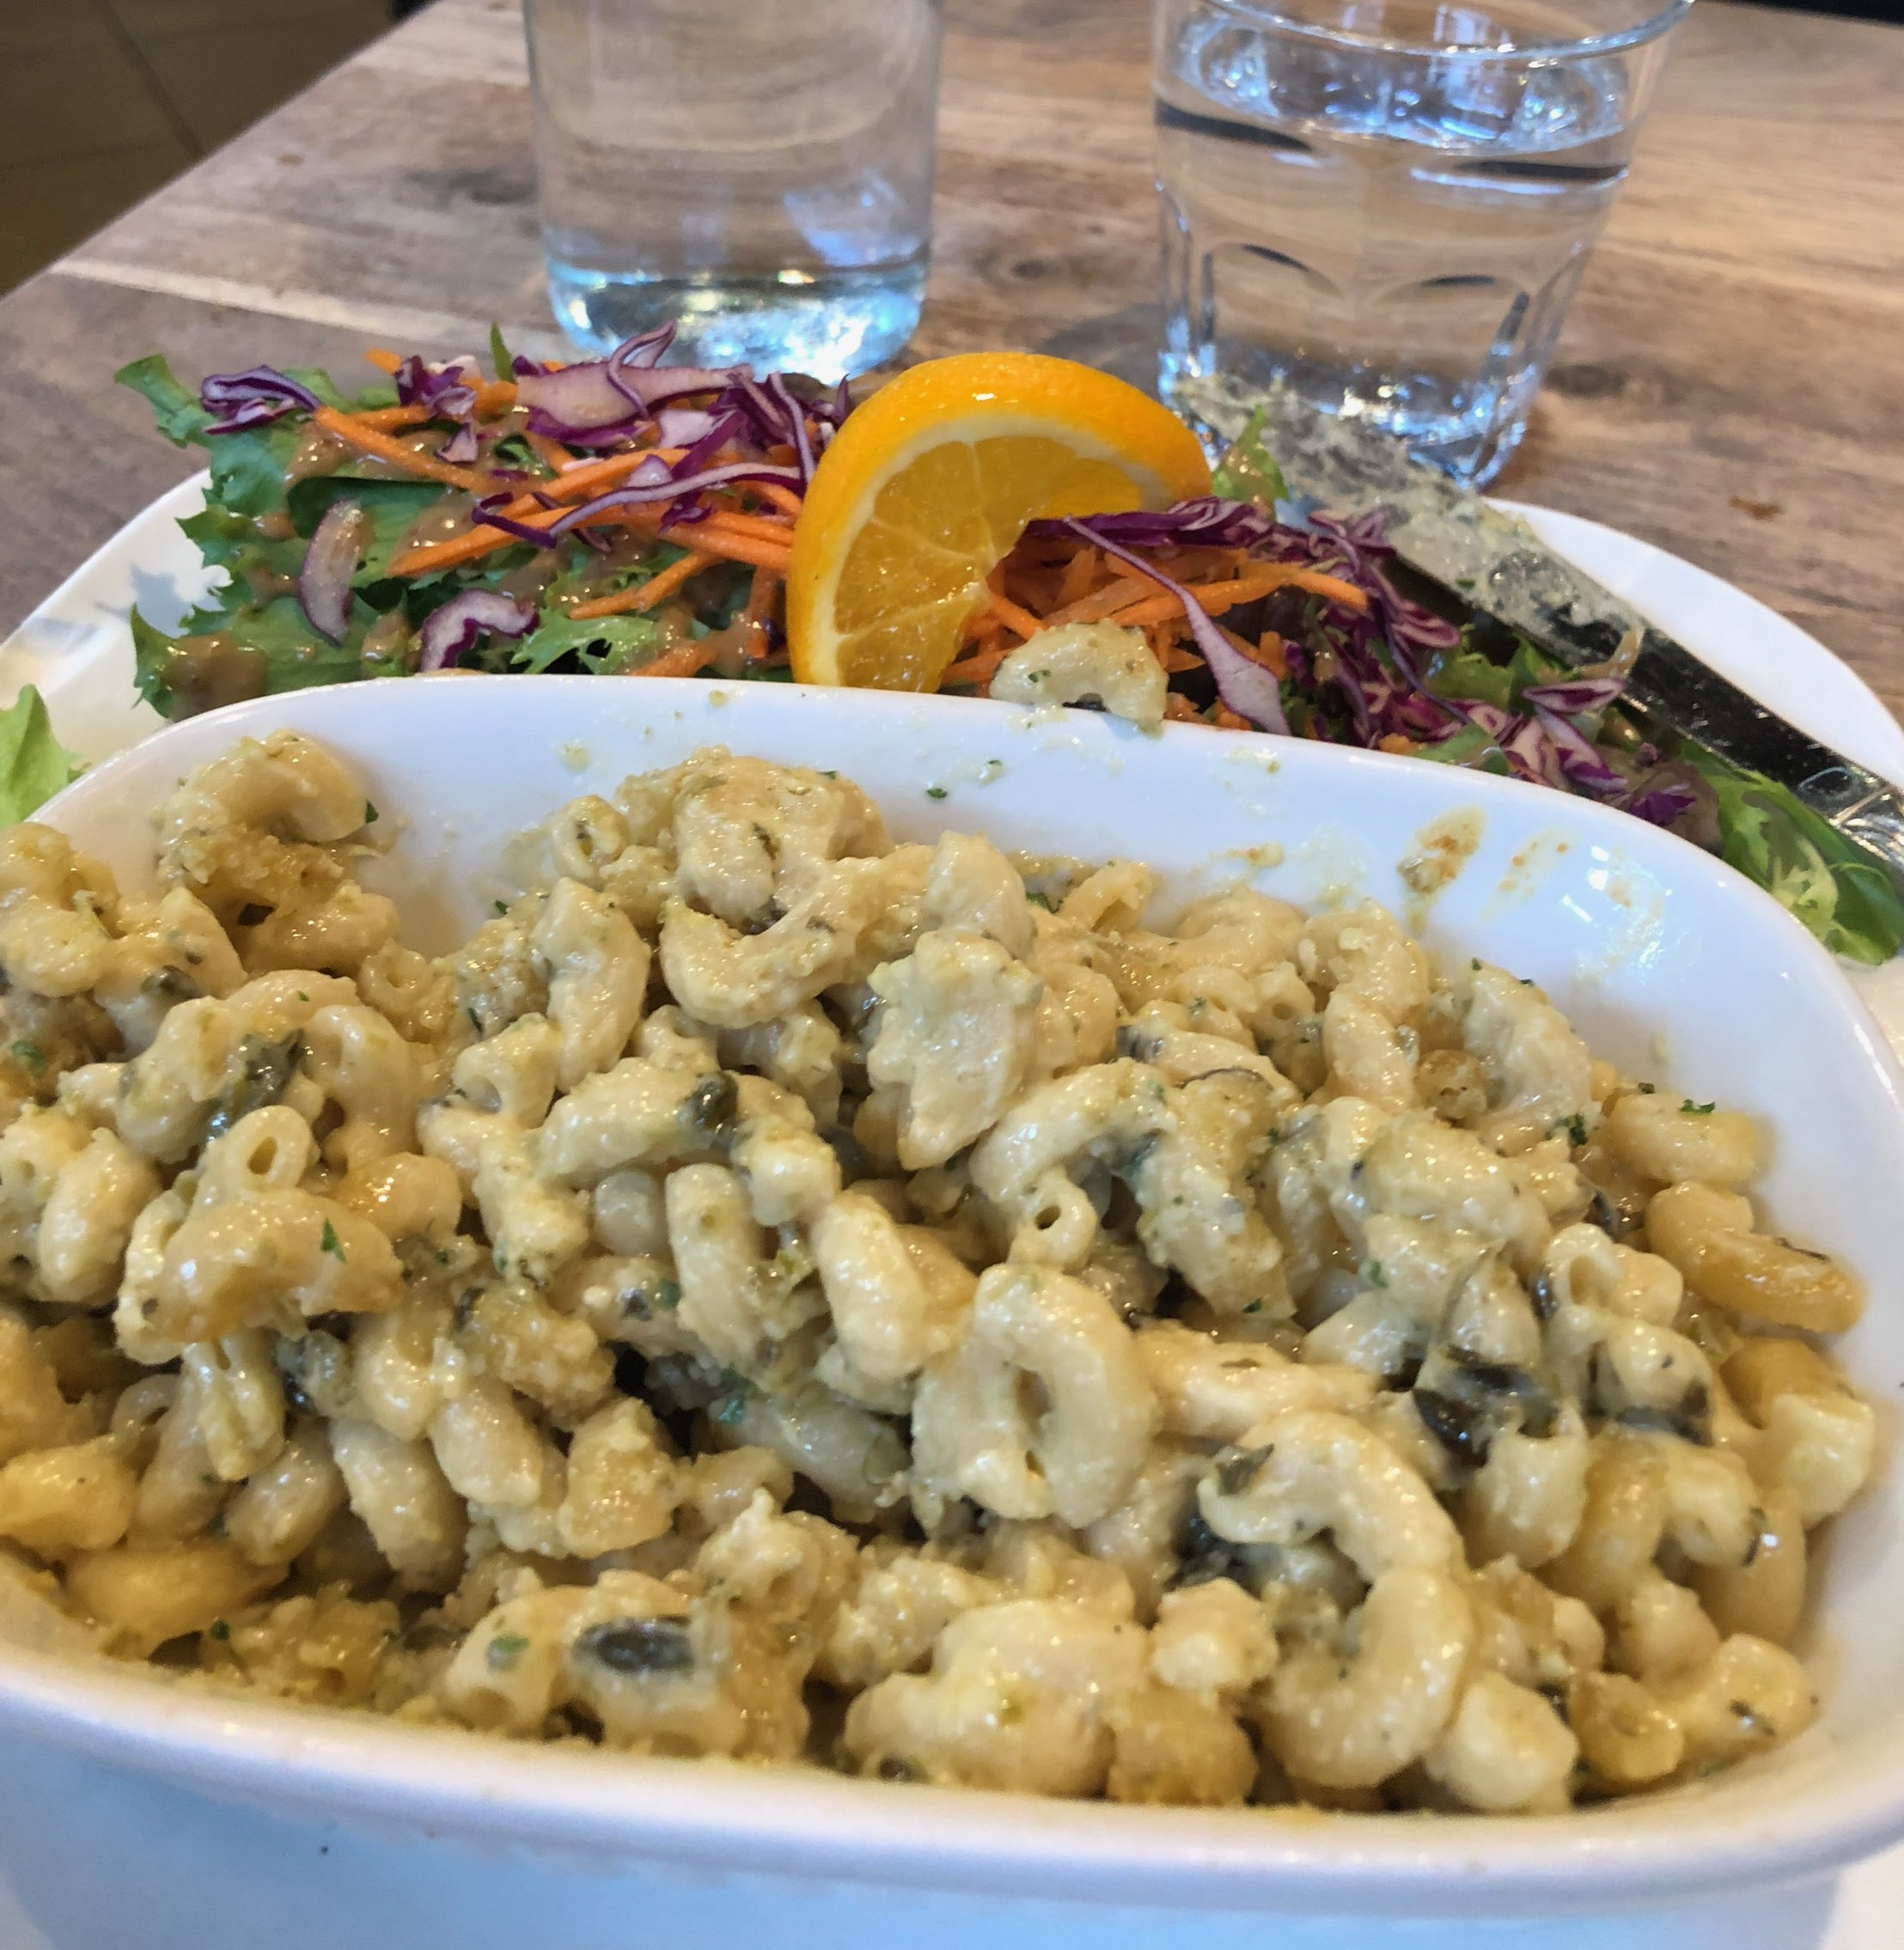 lola rose - montreal - mac and cheese